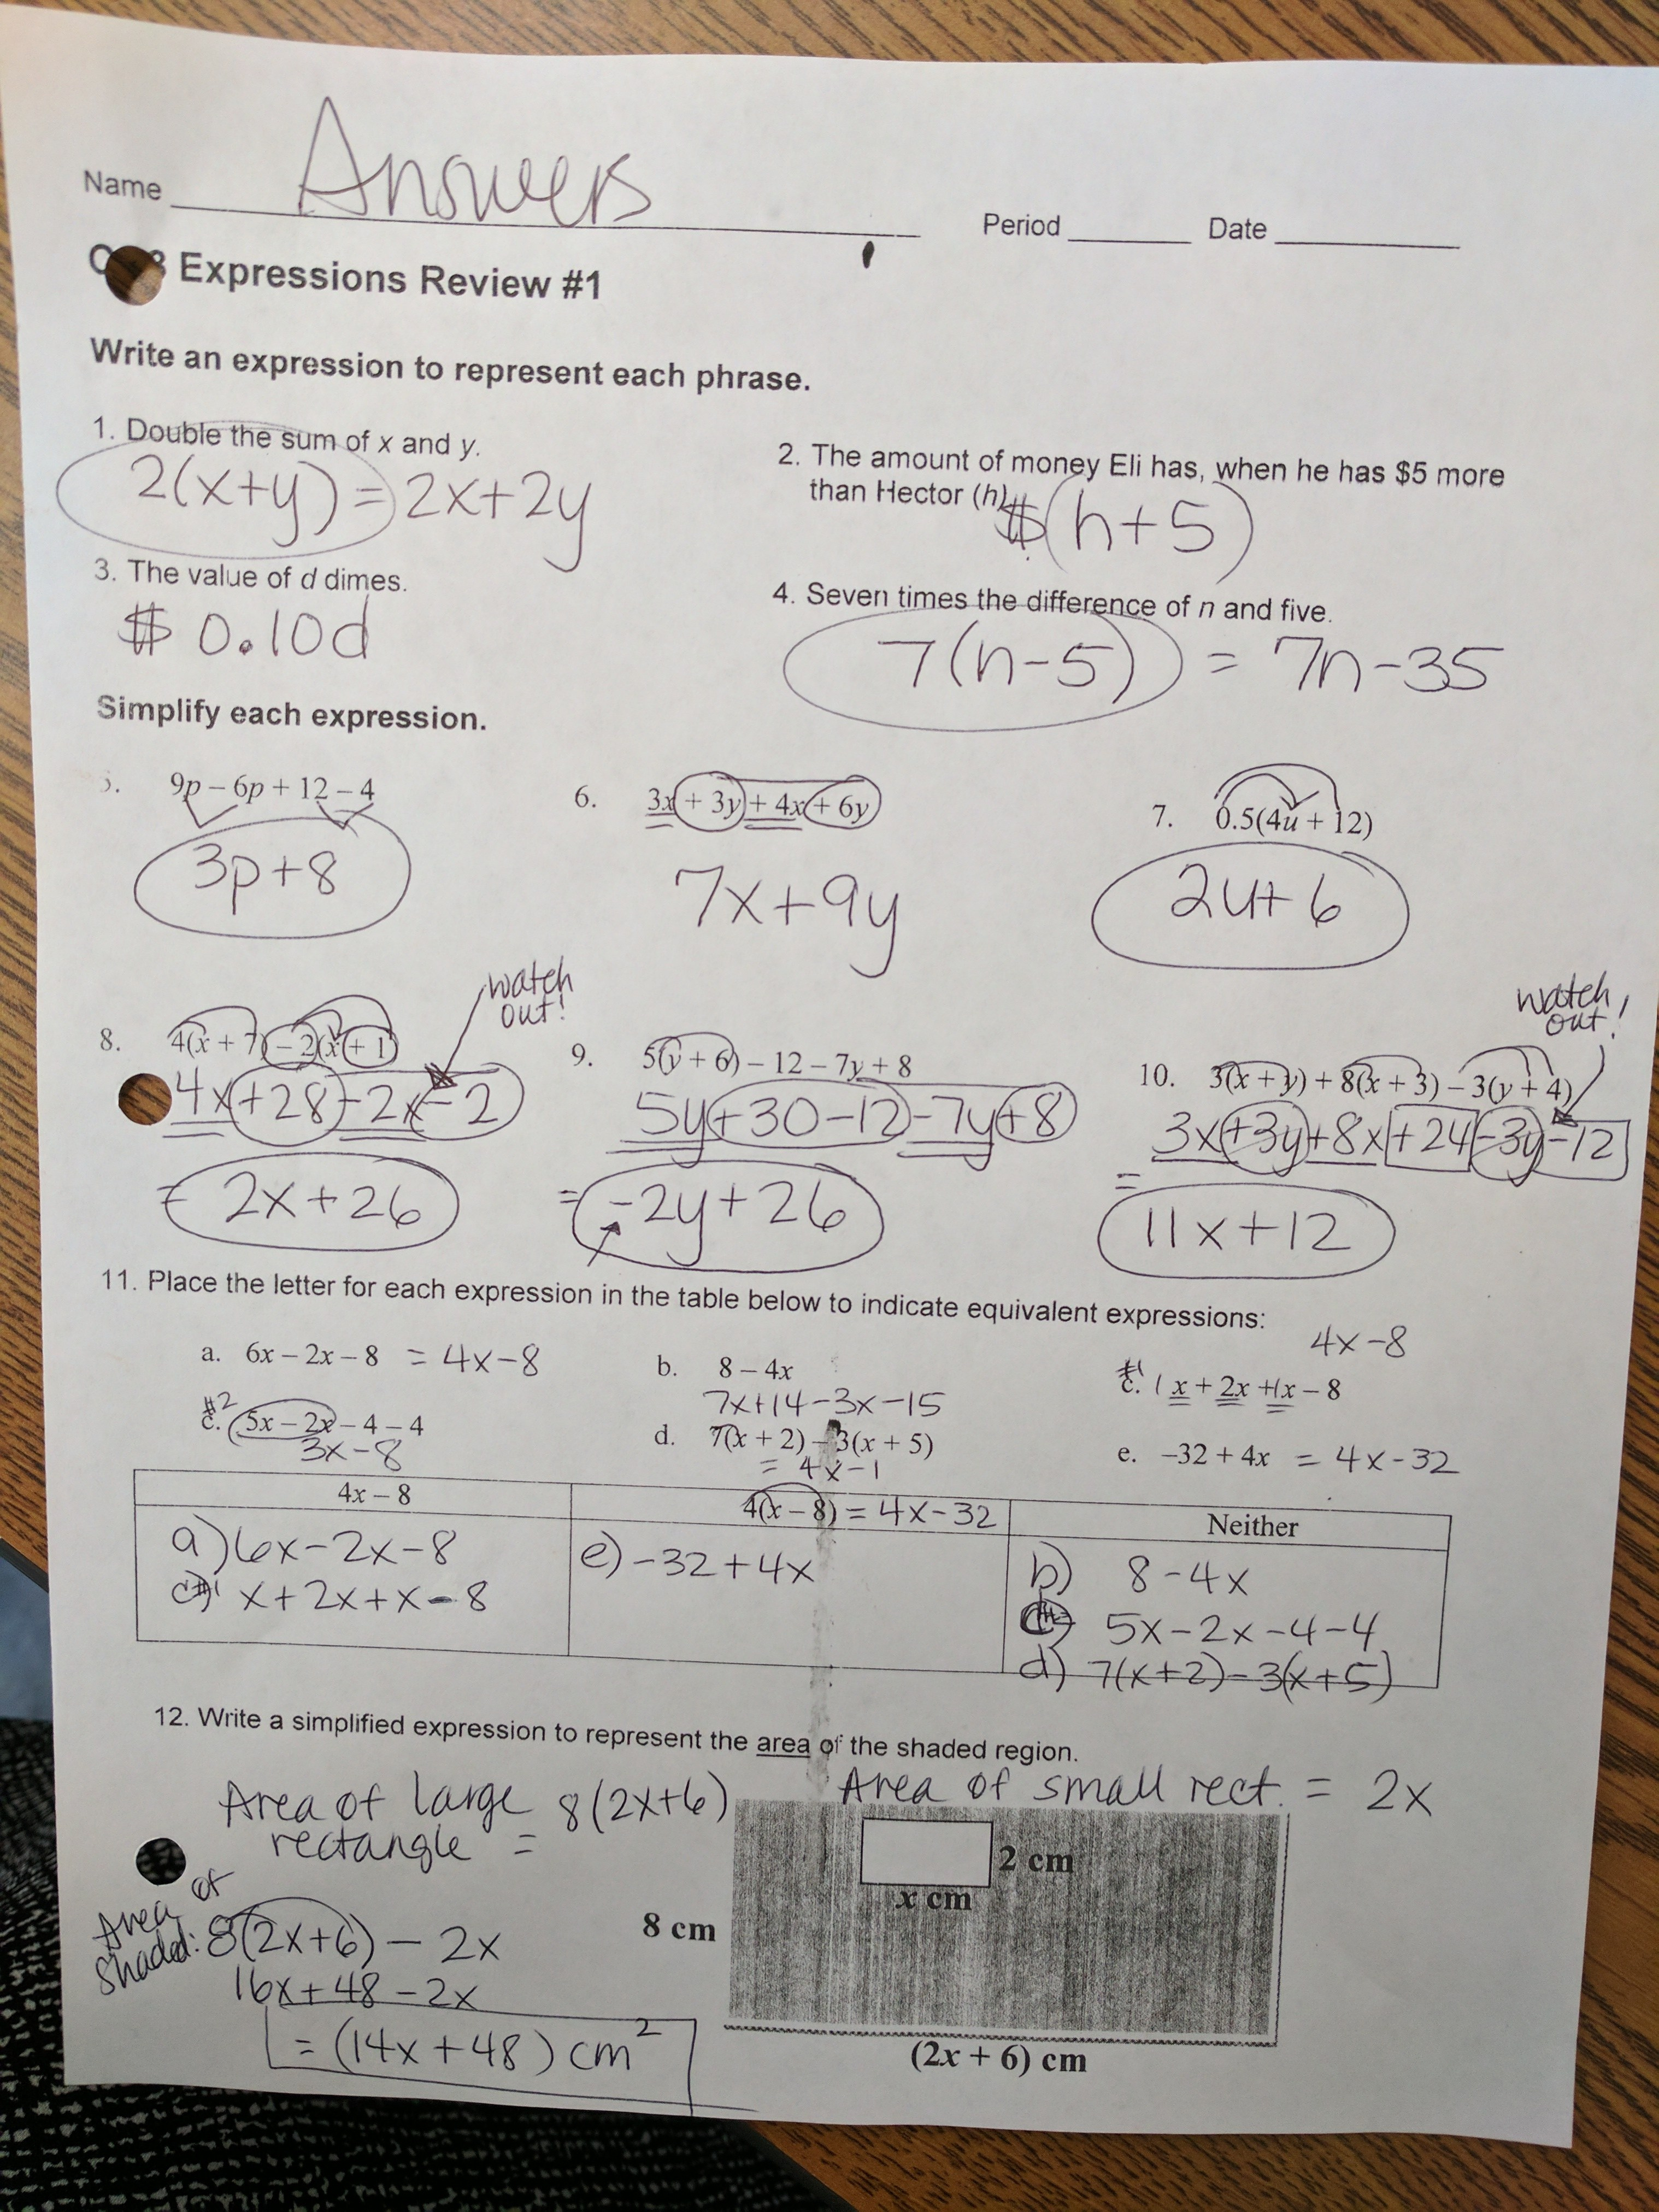 Basic Algebra Word Problems Worksheets Excel   Mixed Factoring Review Worksheet    Best Greatest  Grasshopper Dissection Worksheet Pdf with Parts Of The Plant And Their Functions Worksheet Pdf Mixed Factoring Review Worksheet Culver City Middle Circle Theorems Worksheet Word